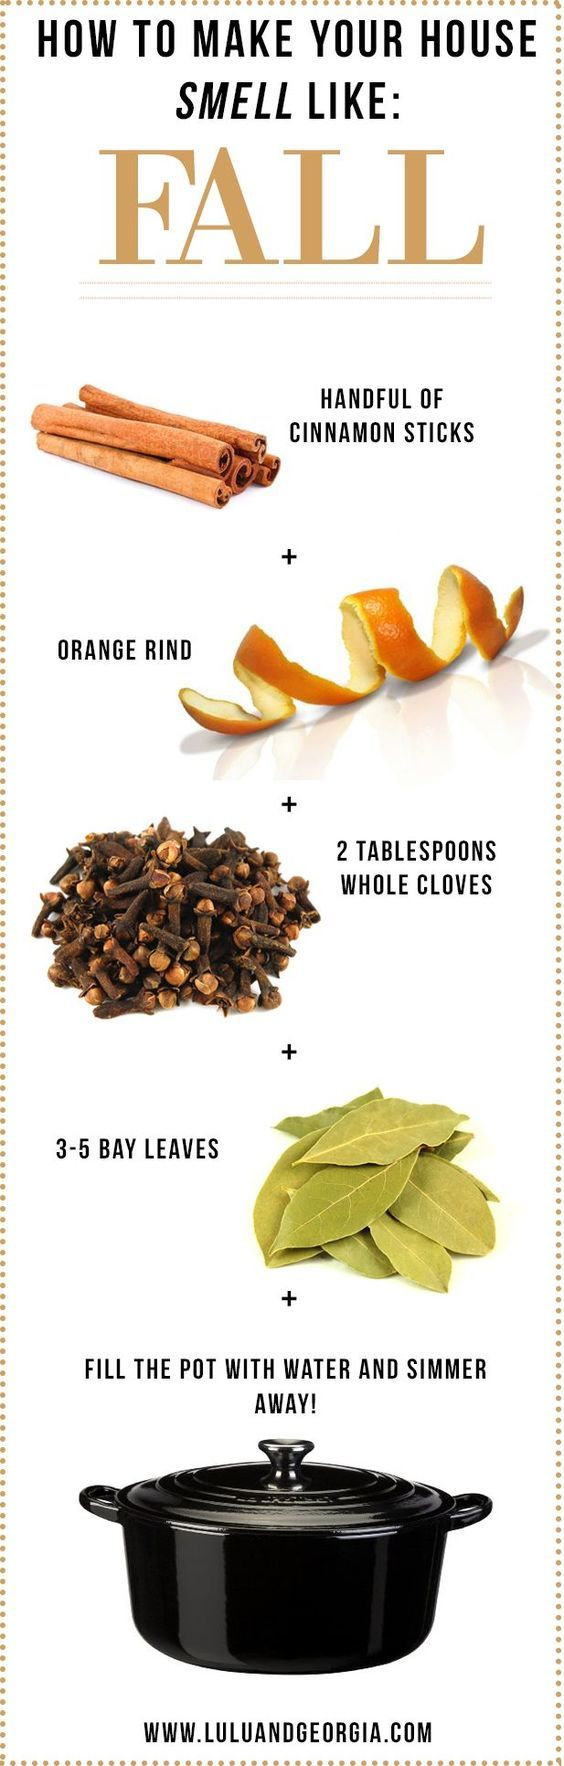 These 8 Smell Hacks Are The Best I M So Hy Found Great Tips Now Can Make My Home Like Fall And Holidays